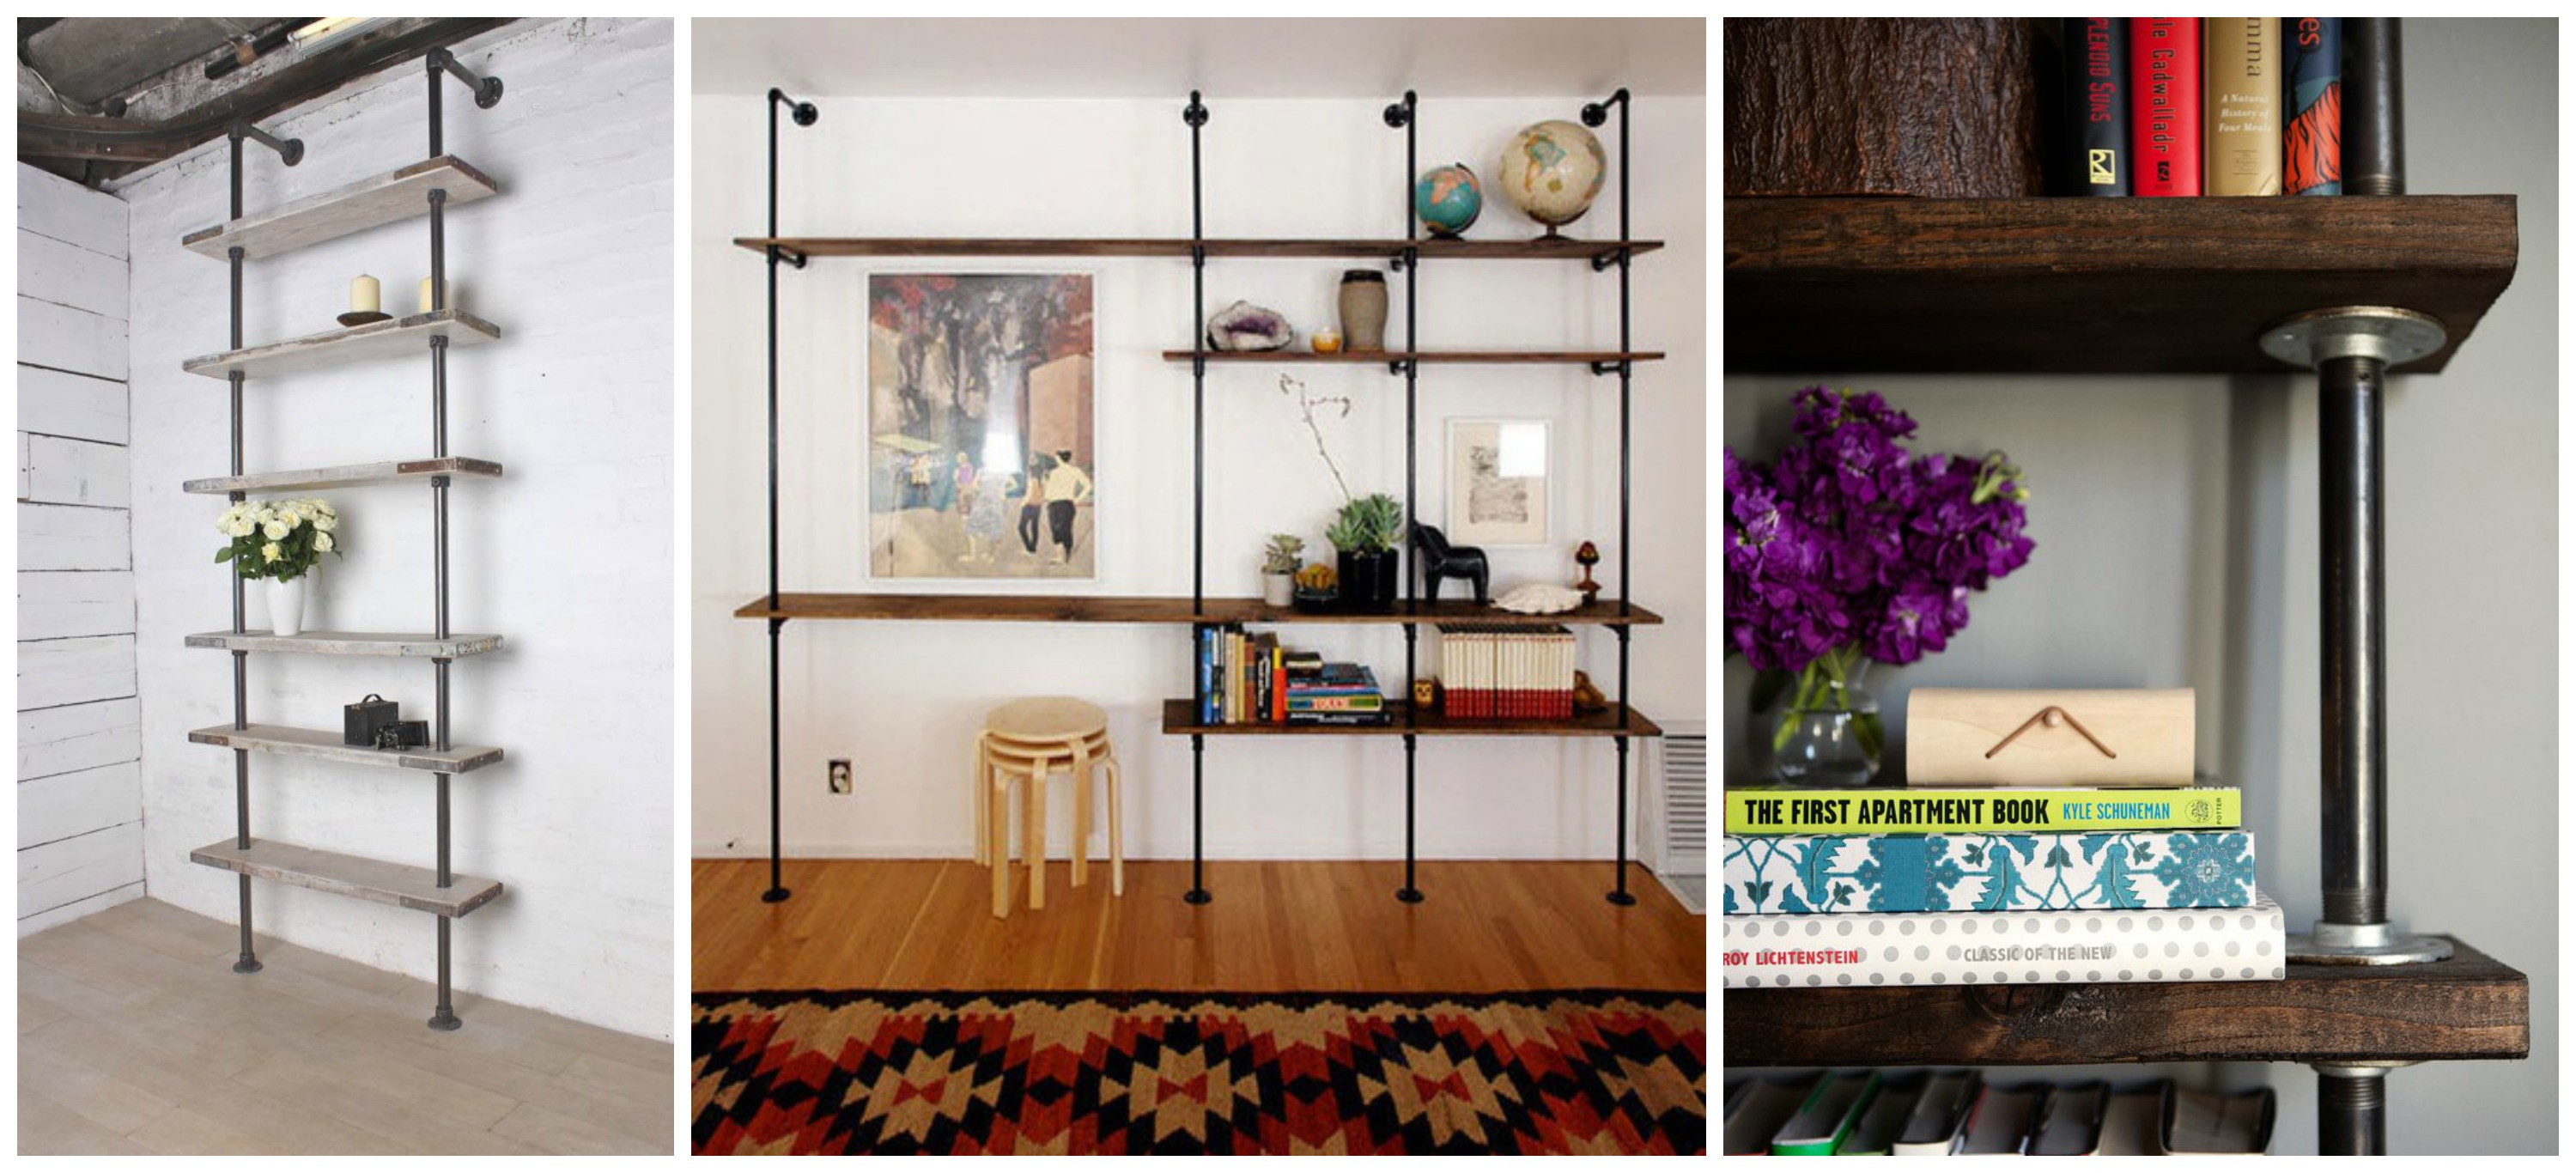 Plumbing Pipe Bookshelf The EGG